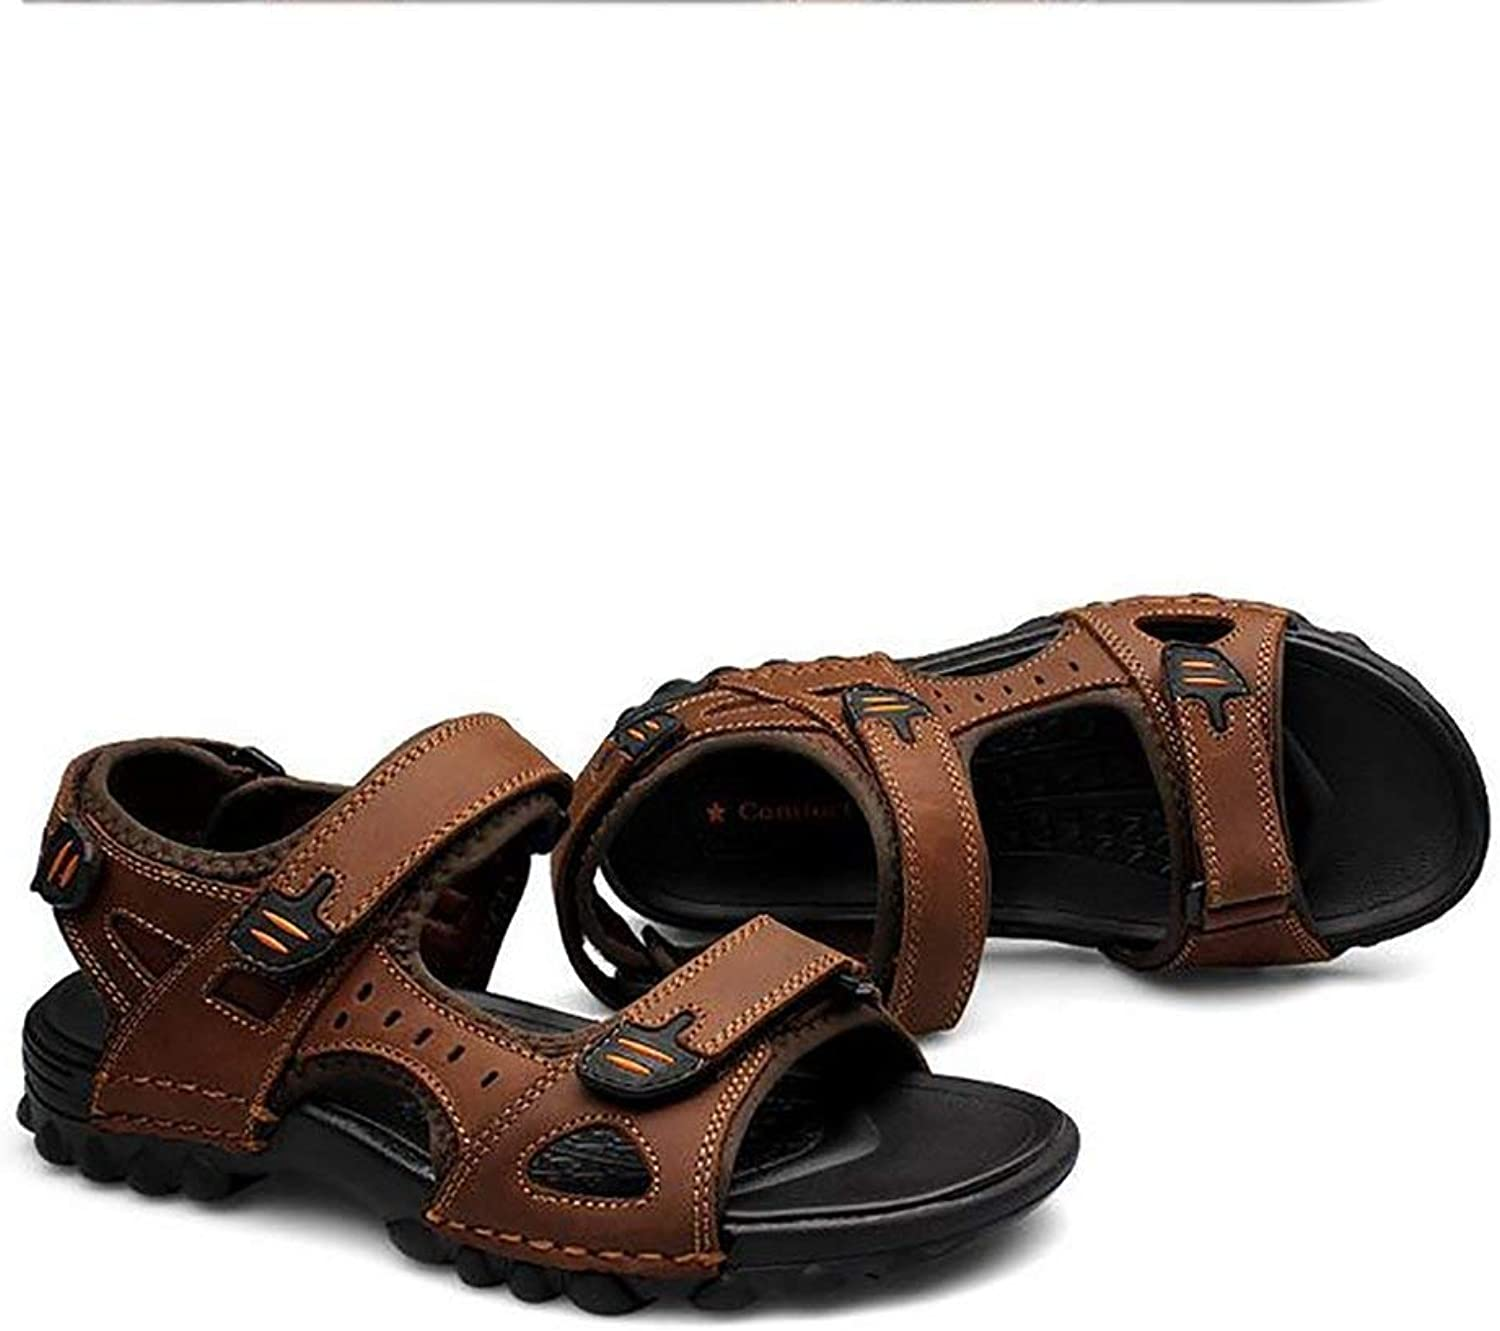 Yingsssq Leather Sandals Summer Cozy Breathable Men shoes Outdoor Beach Safety Soles Go Sport Travel Slippers, brown, 40 (color   Brown, Size   UK 6.5)